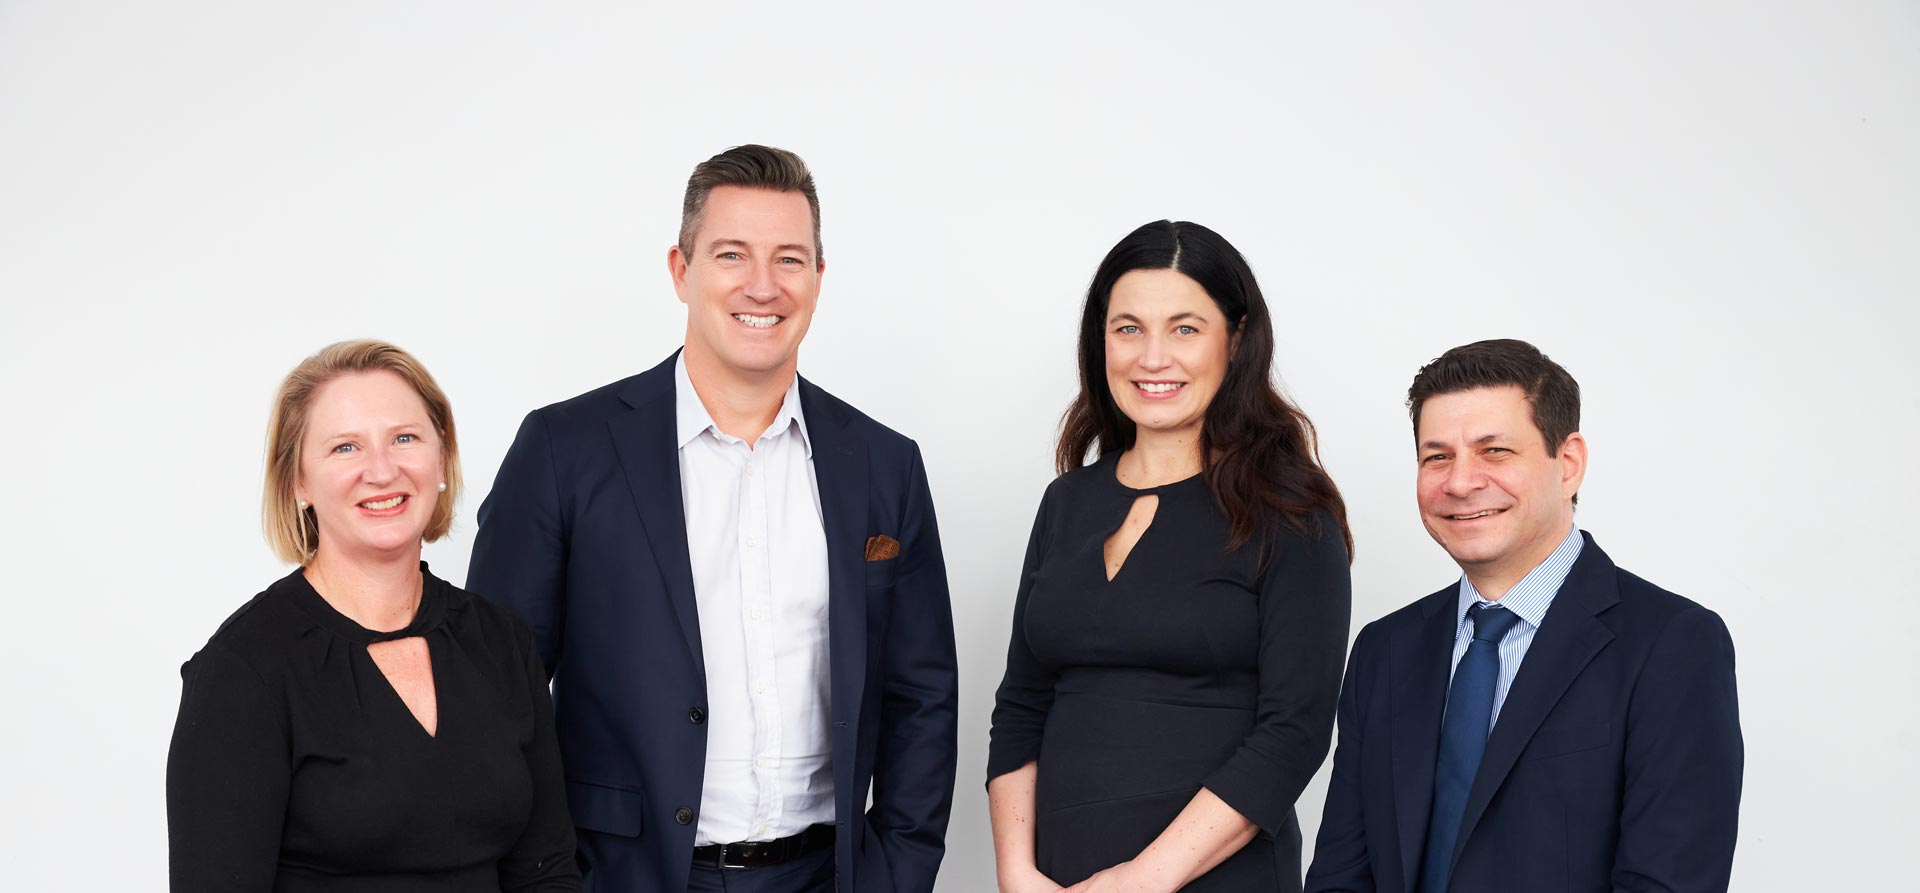 New Boutique Advisory Firm To Help Businesses Transition to post-COVID Conditions